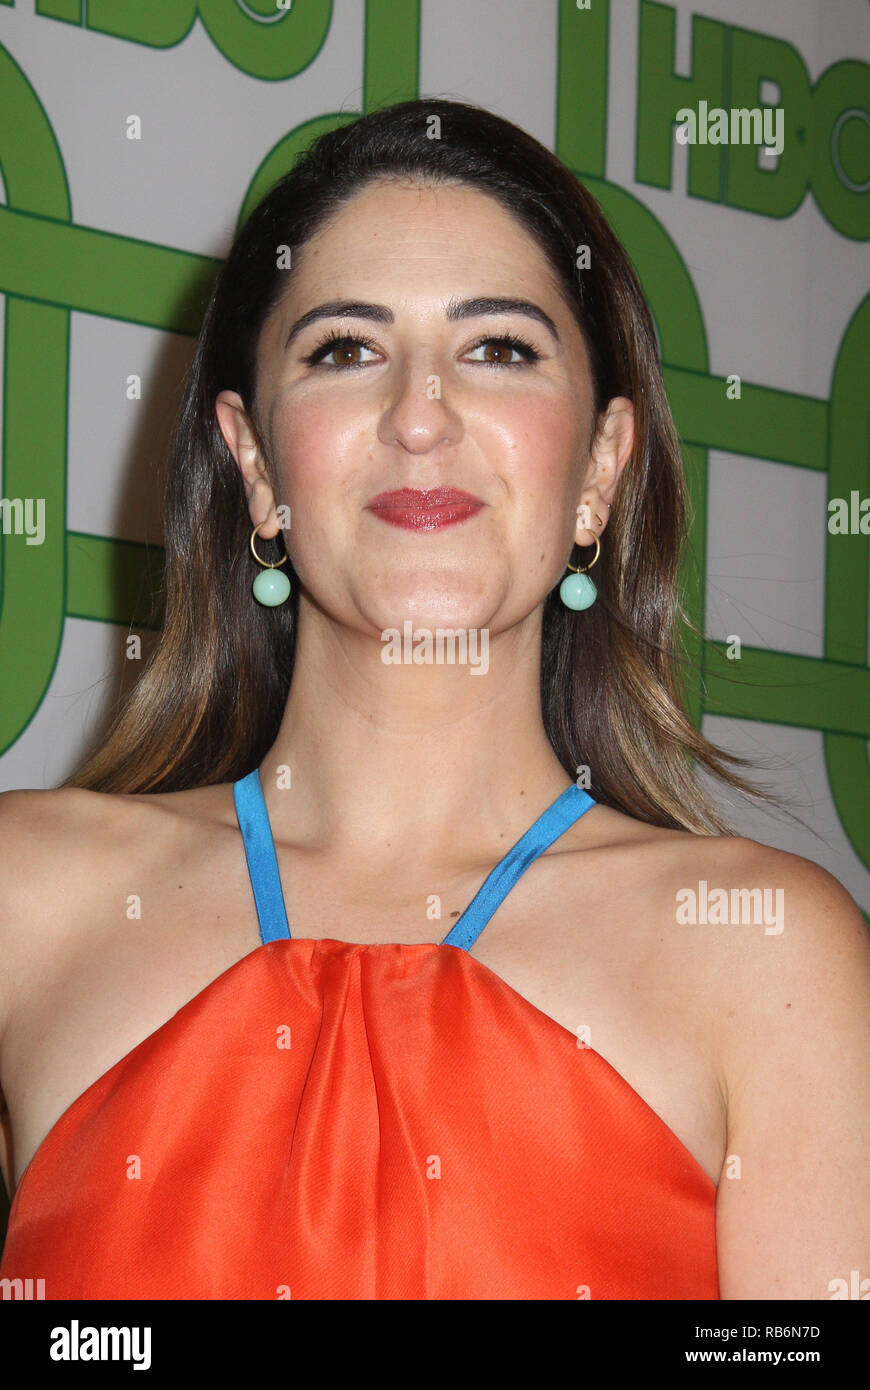 D'Arcy Carden  01/06/2019 The 76th Annual Golden Globe Awards HBO After Party held at the Circa 55 Restaurant at The Beverly Hilton in Beverly Hills, CA   Photo: Cronos/Hollywood News Stock Photo